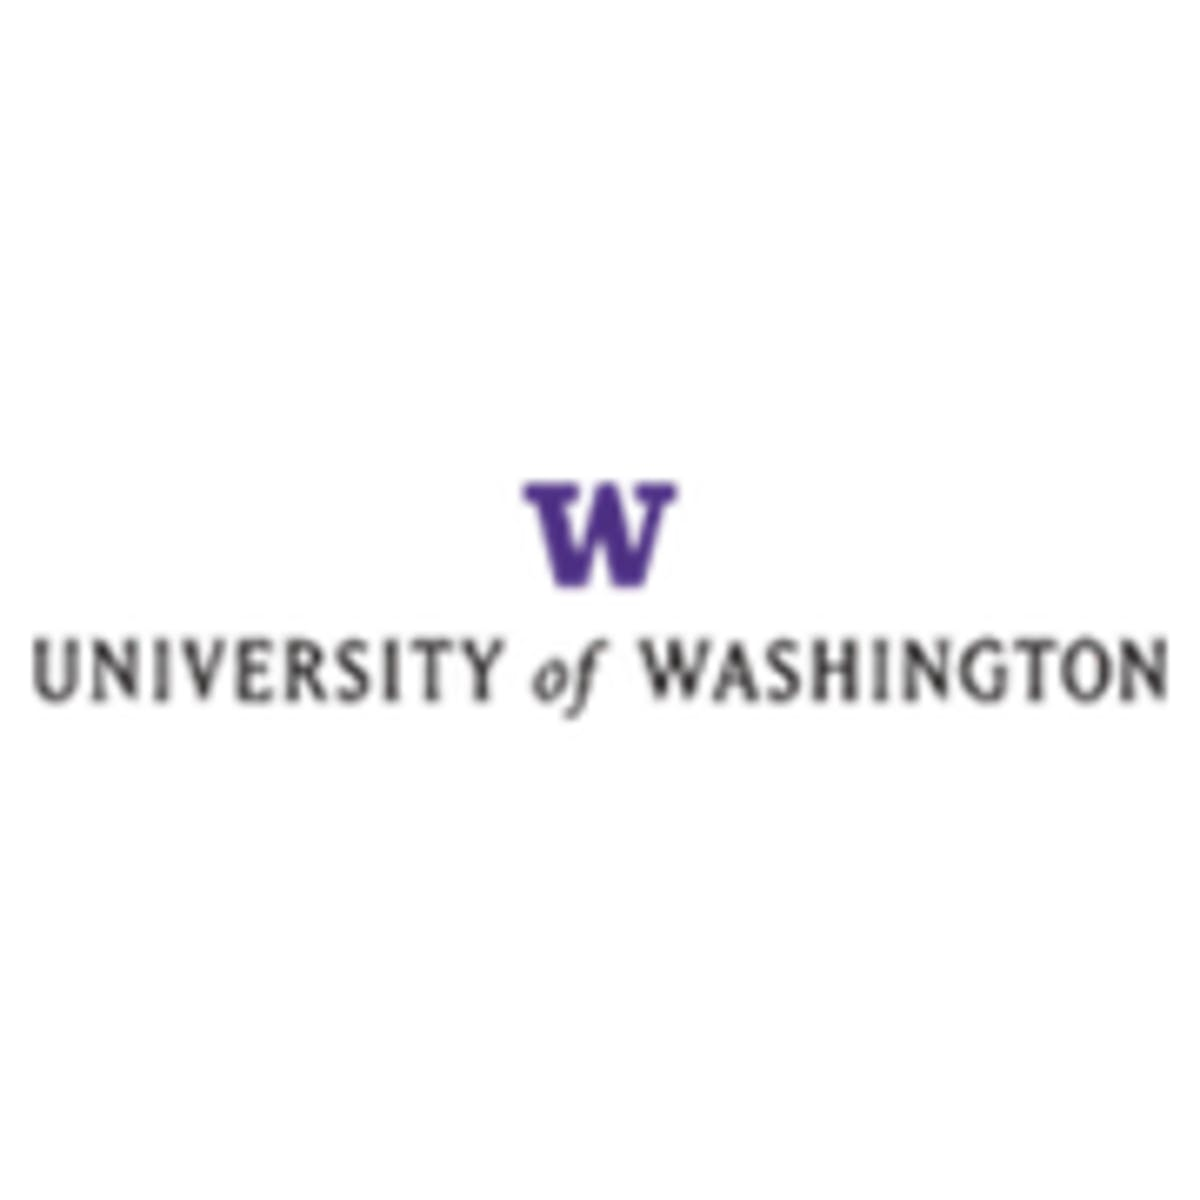 Universidad de Washington